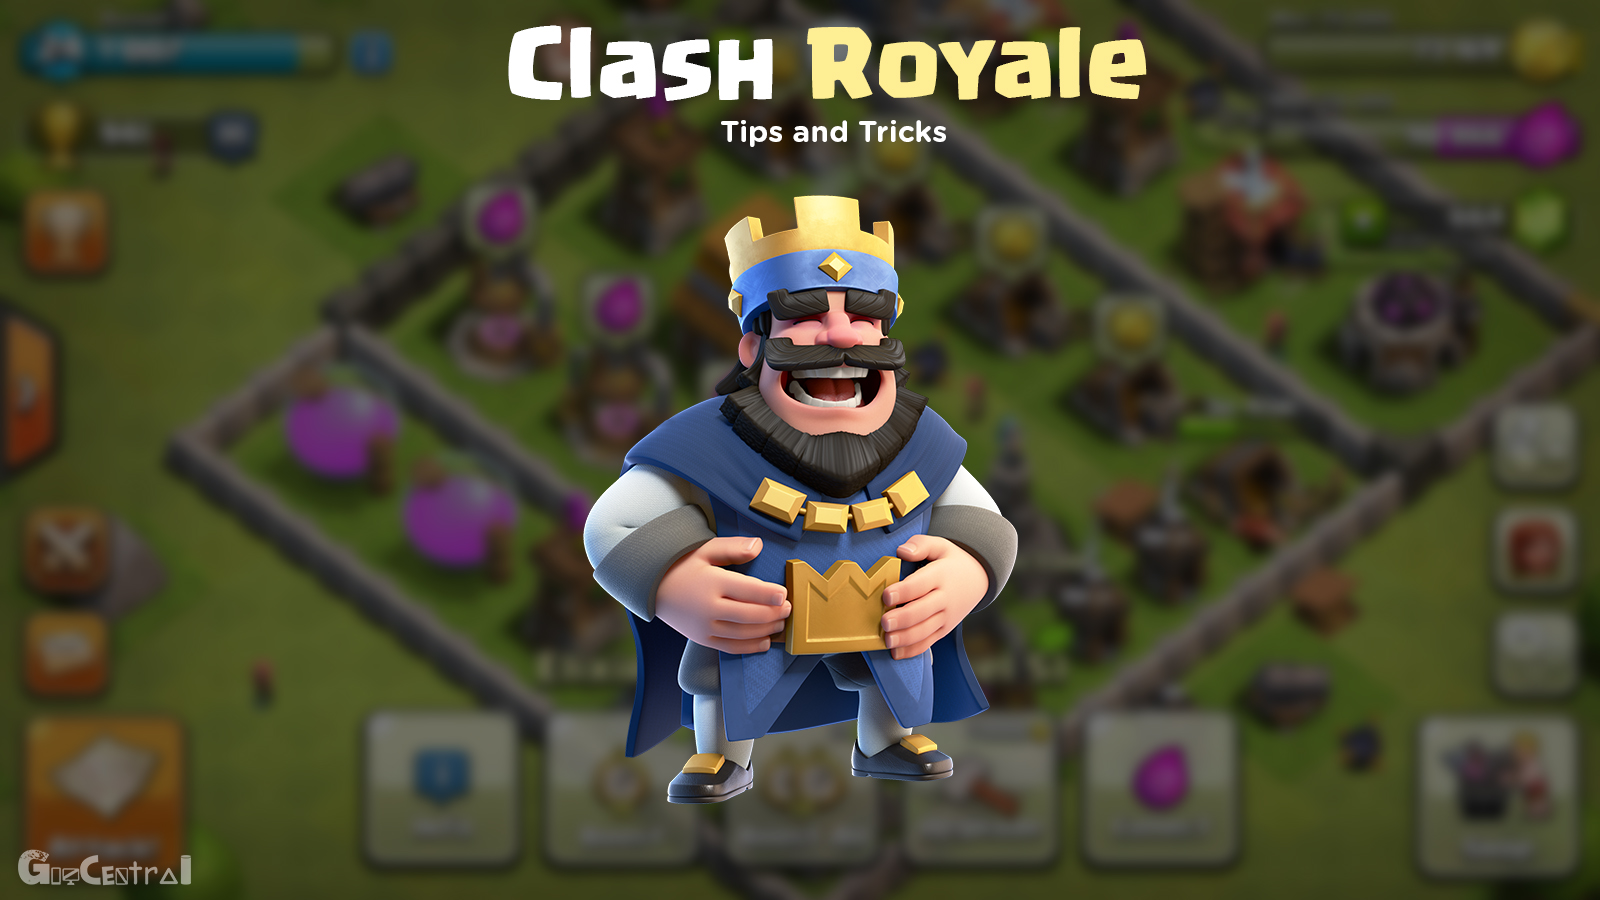 Top 10 Tips and Tricks to Play Clash Royale like a Pro